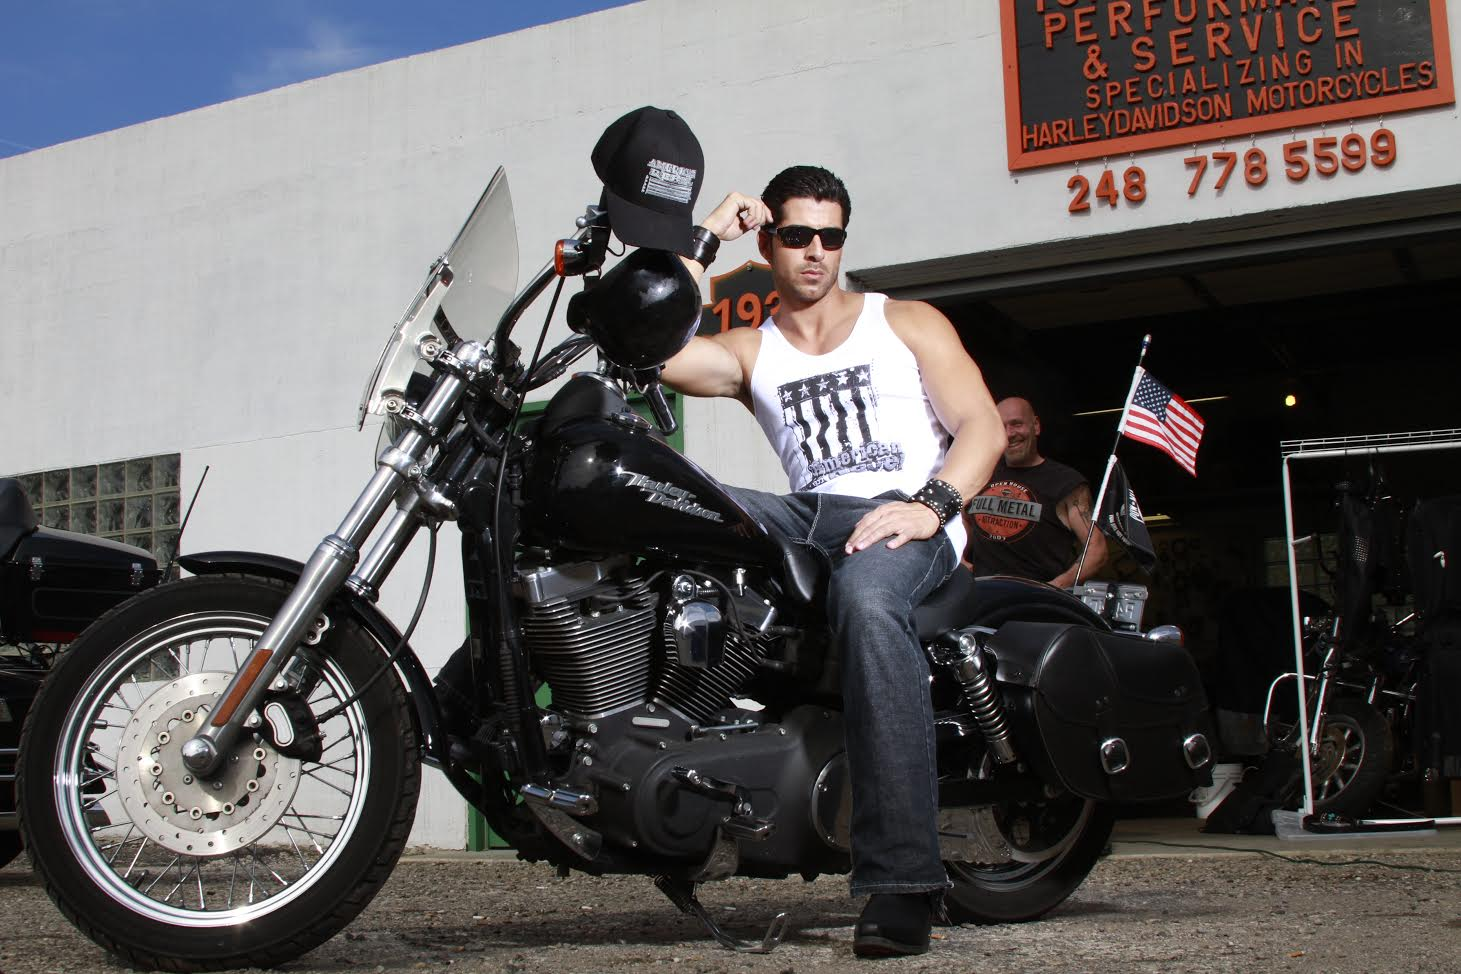 American Rebel on a Motorcycle